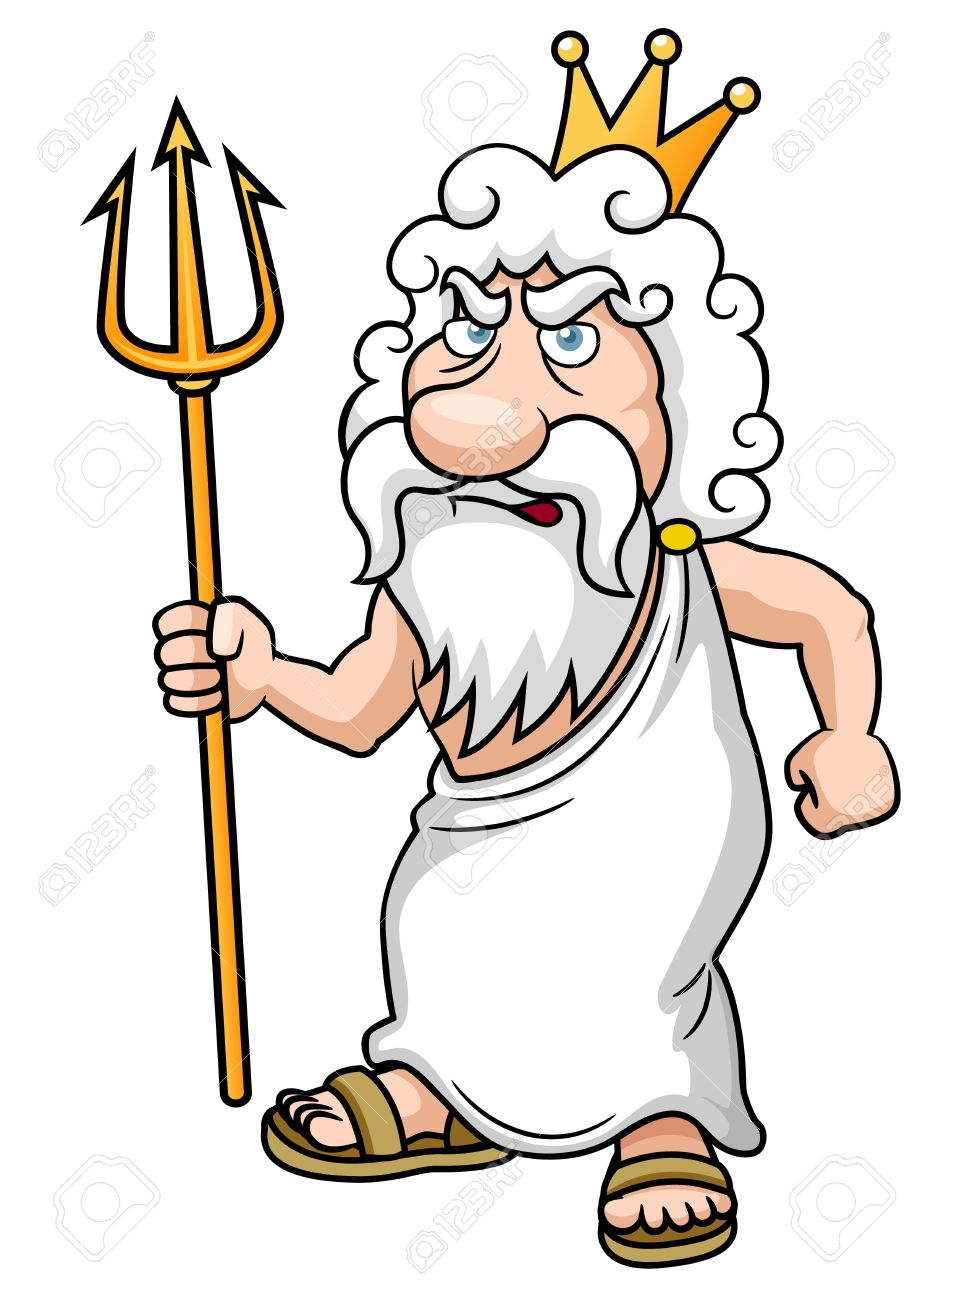 Clipart poesidon image library 59+ Poseidon Clipart   ClipartLook image library